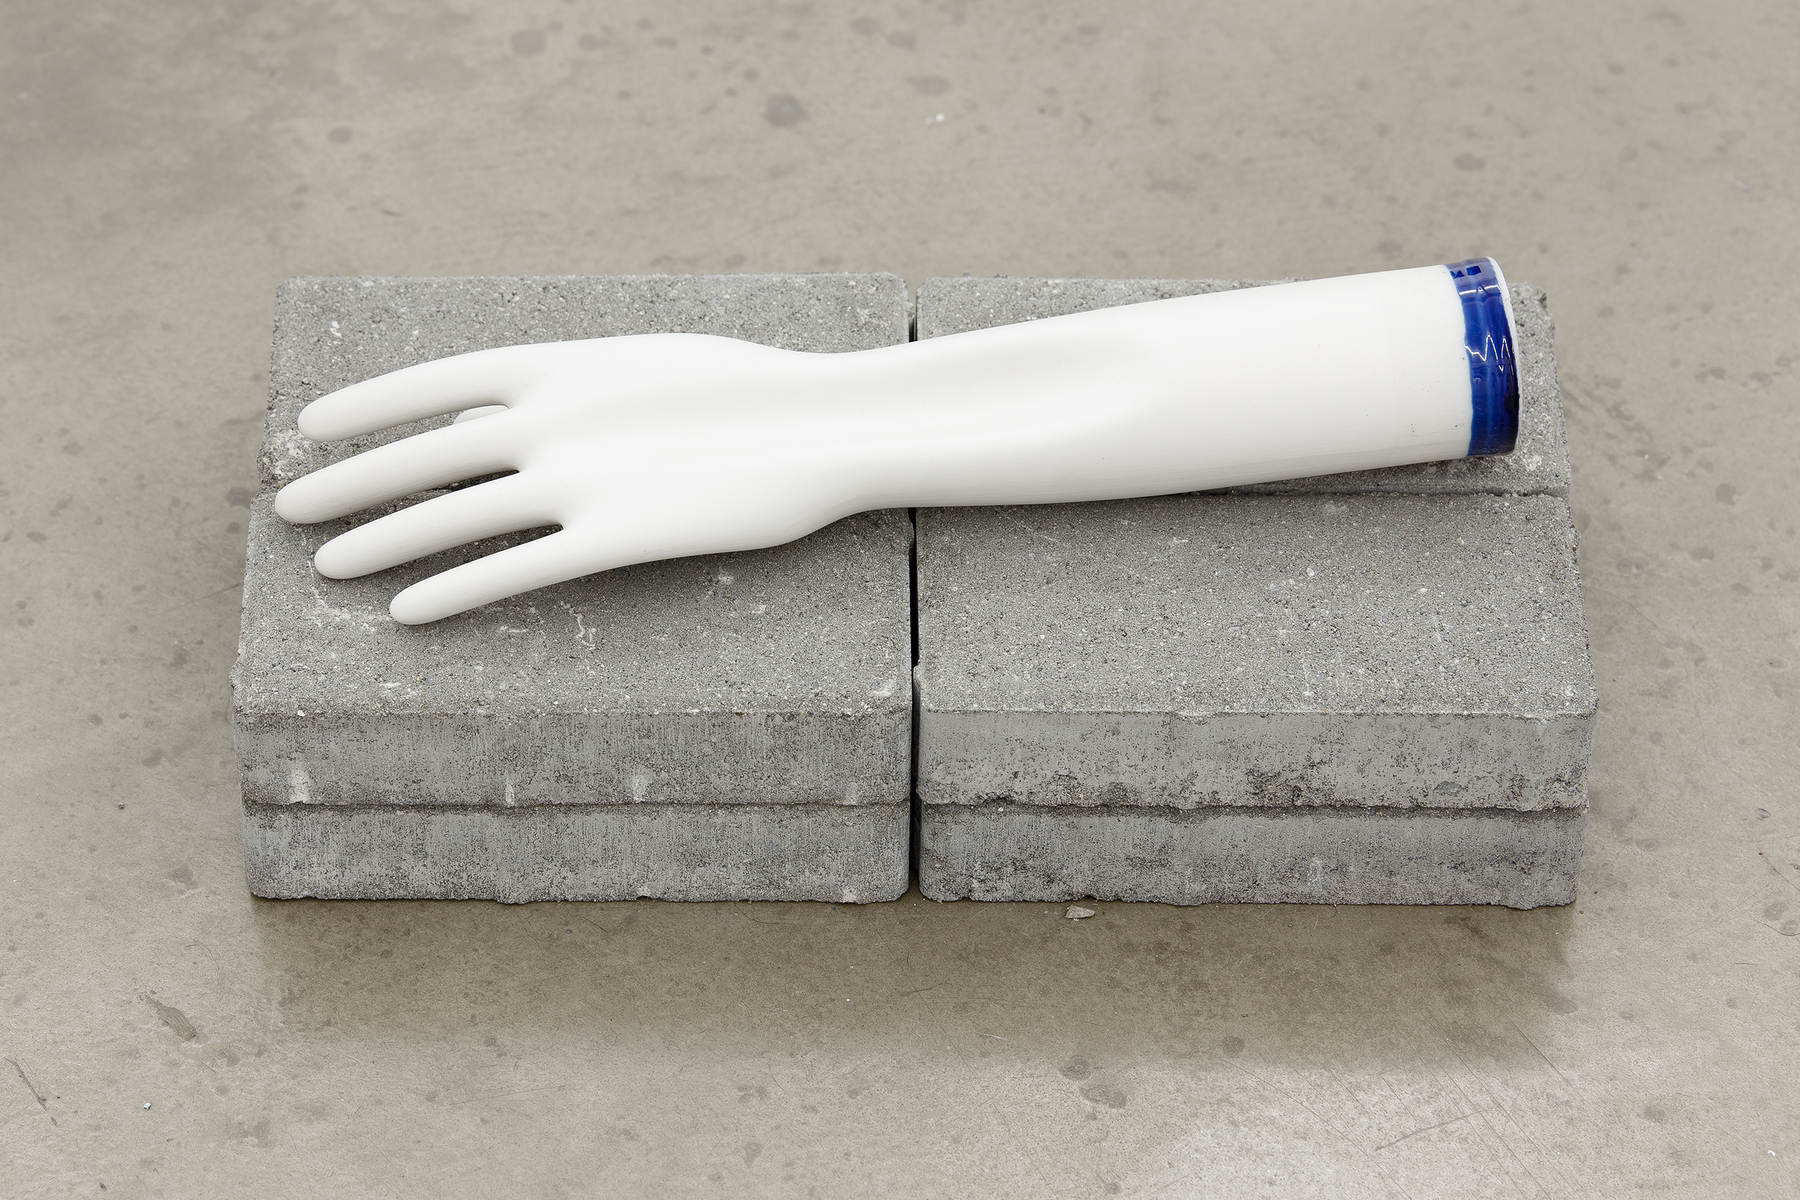 How it's made, 2015, porcelain glove mold, 9 x 27 cm (1)